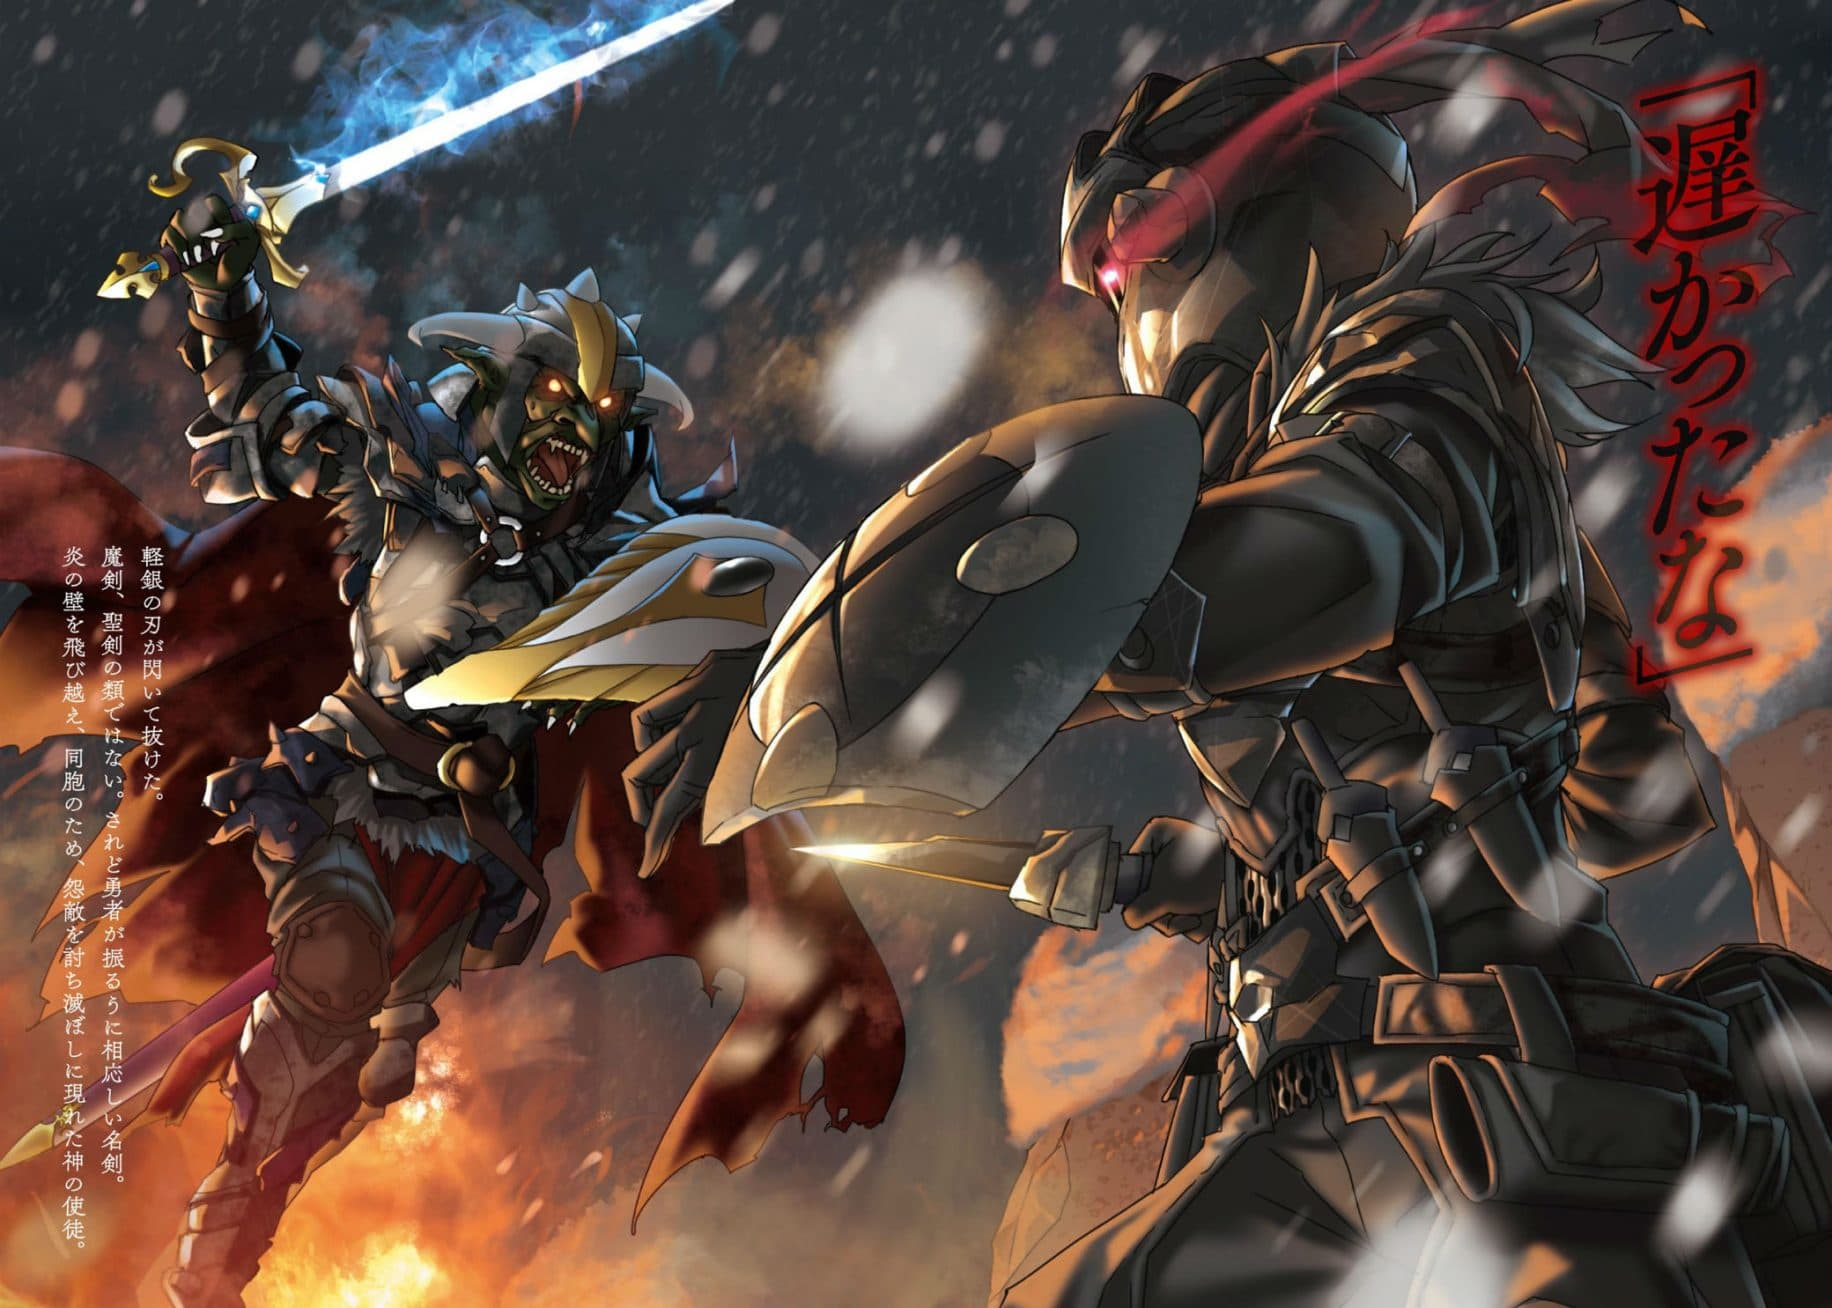 Goblin Slayer Light Novel Volume 5 Art Goblin Paladin vs Goblin Slayer